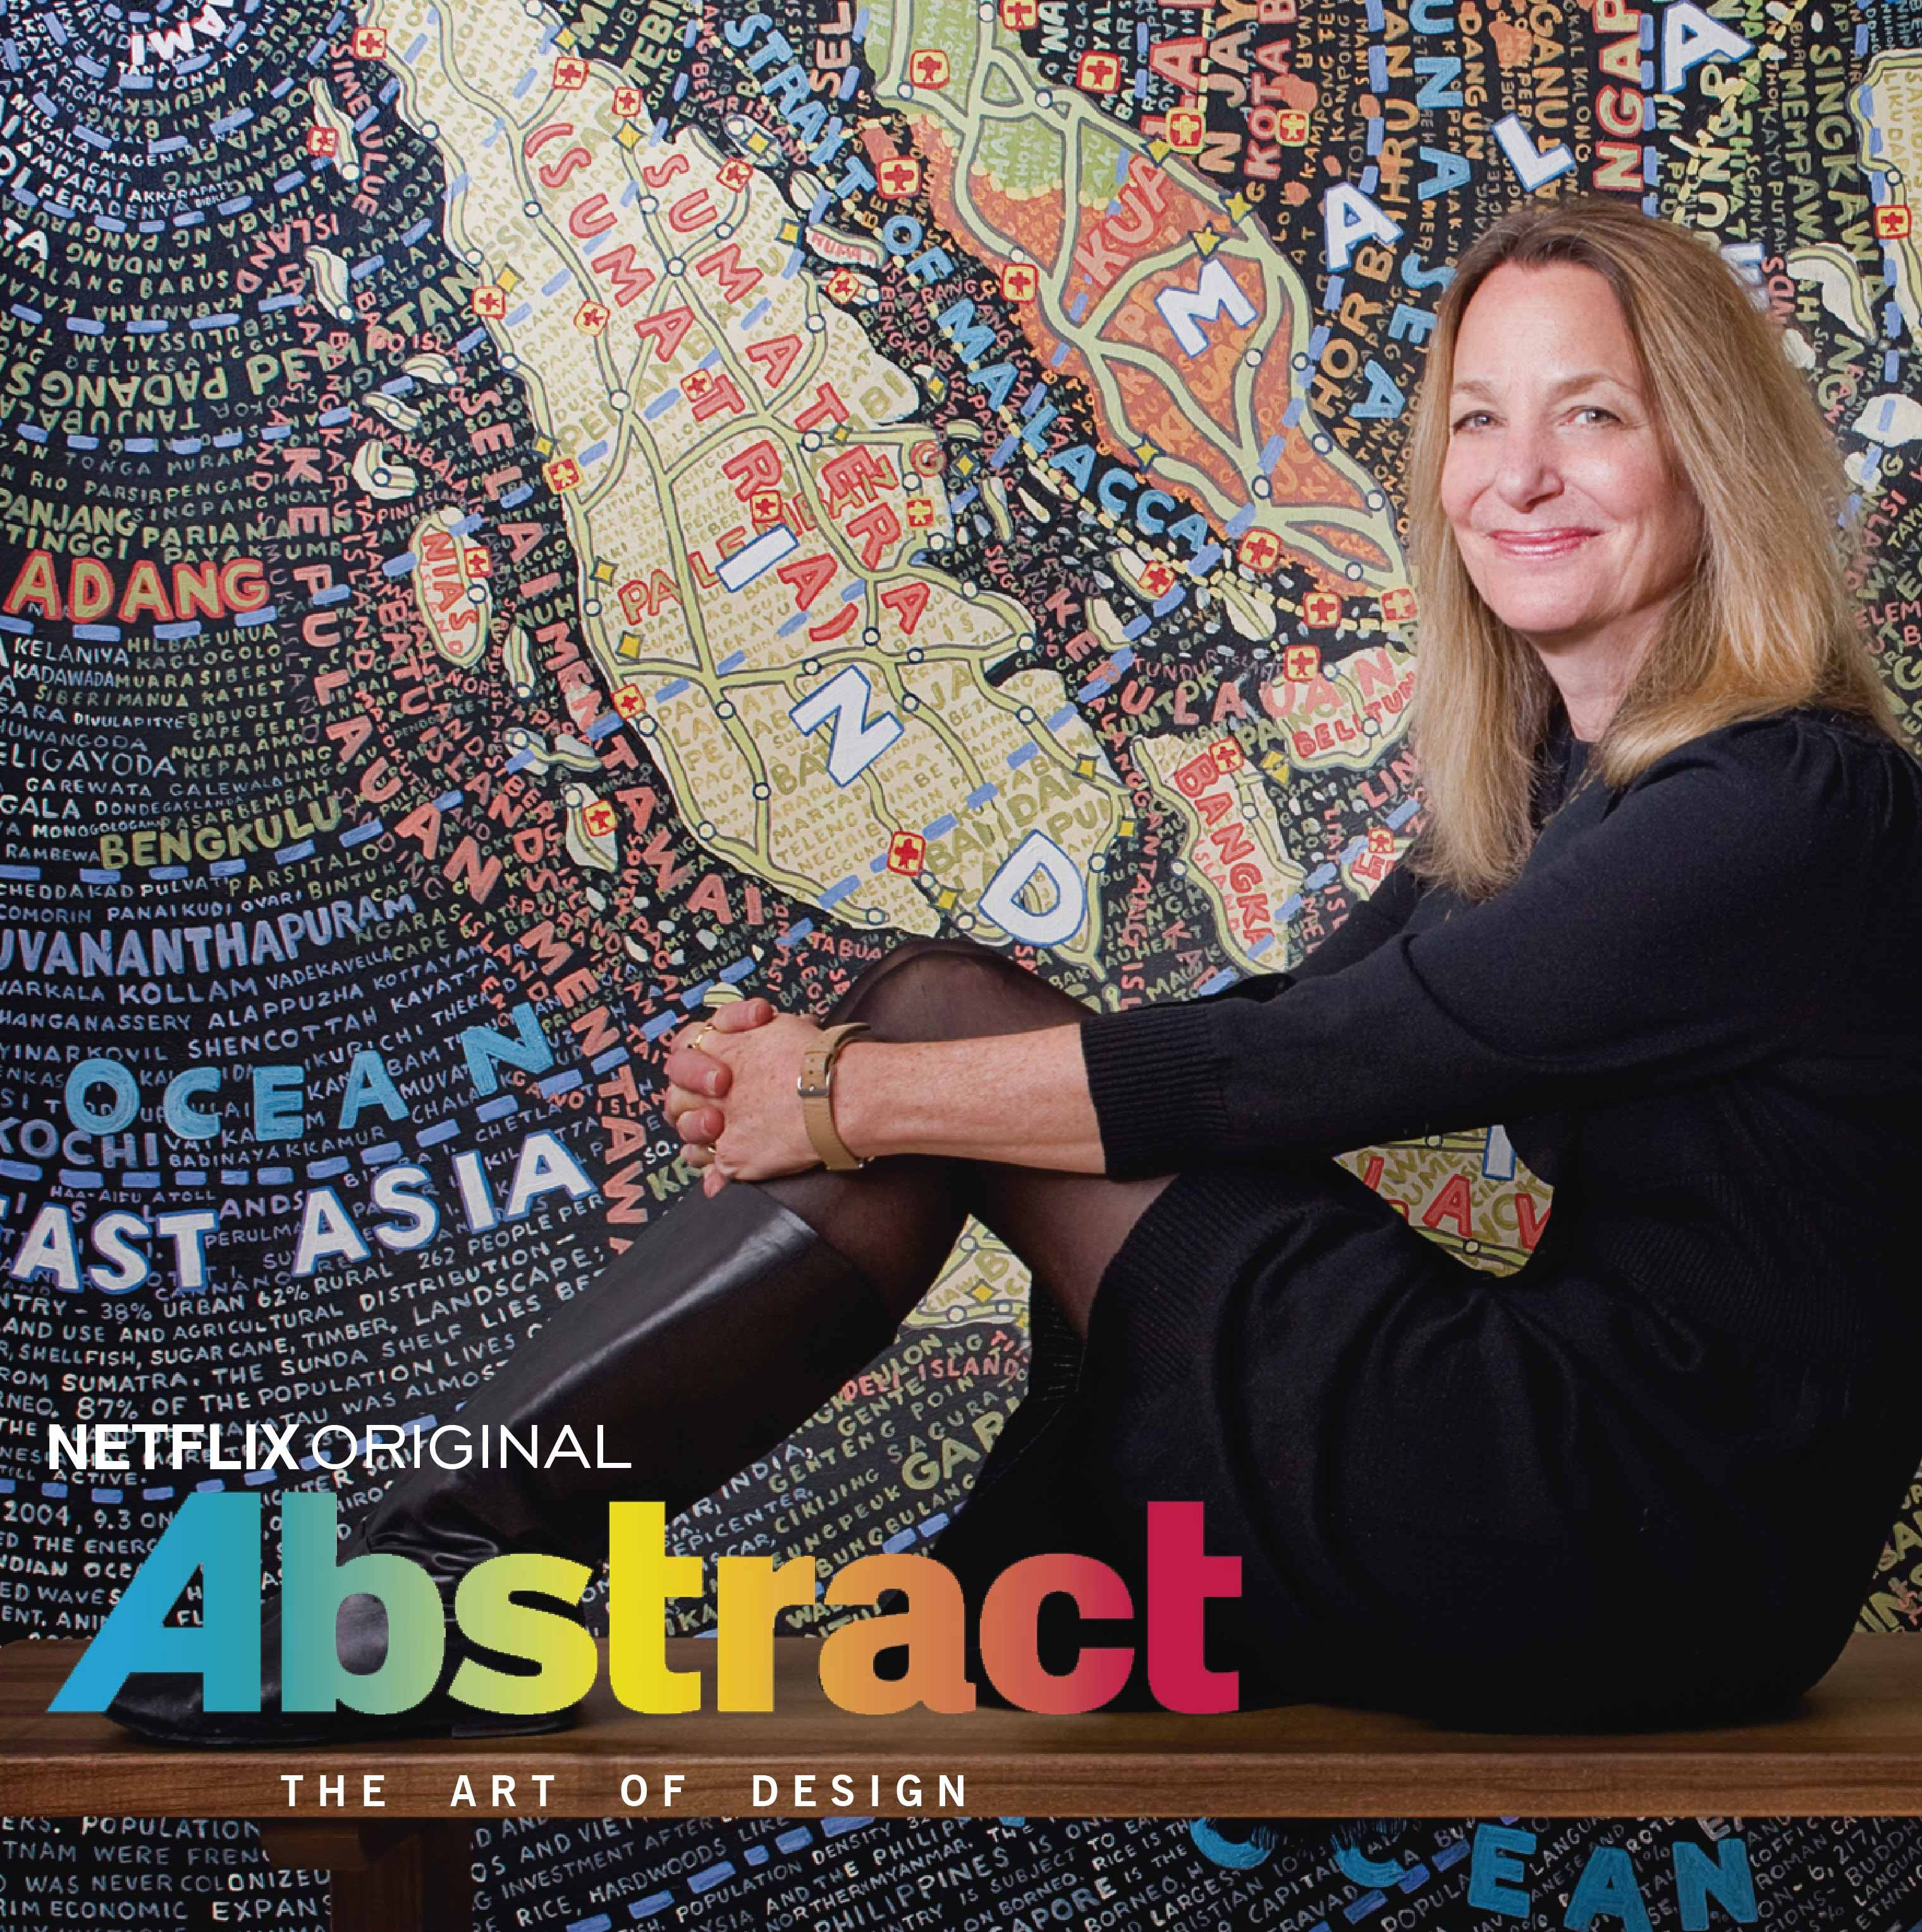 Abstract The Art of Design por Netflix a designer gráfica Paula Scher